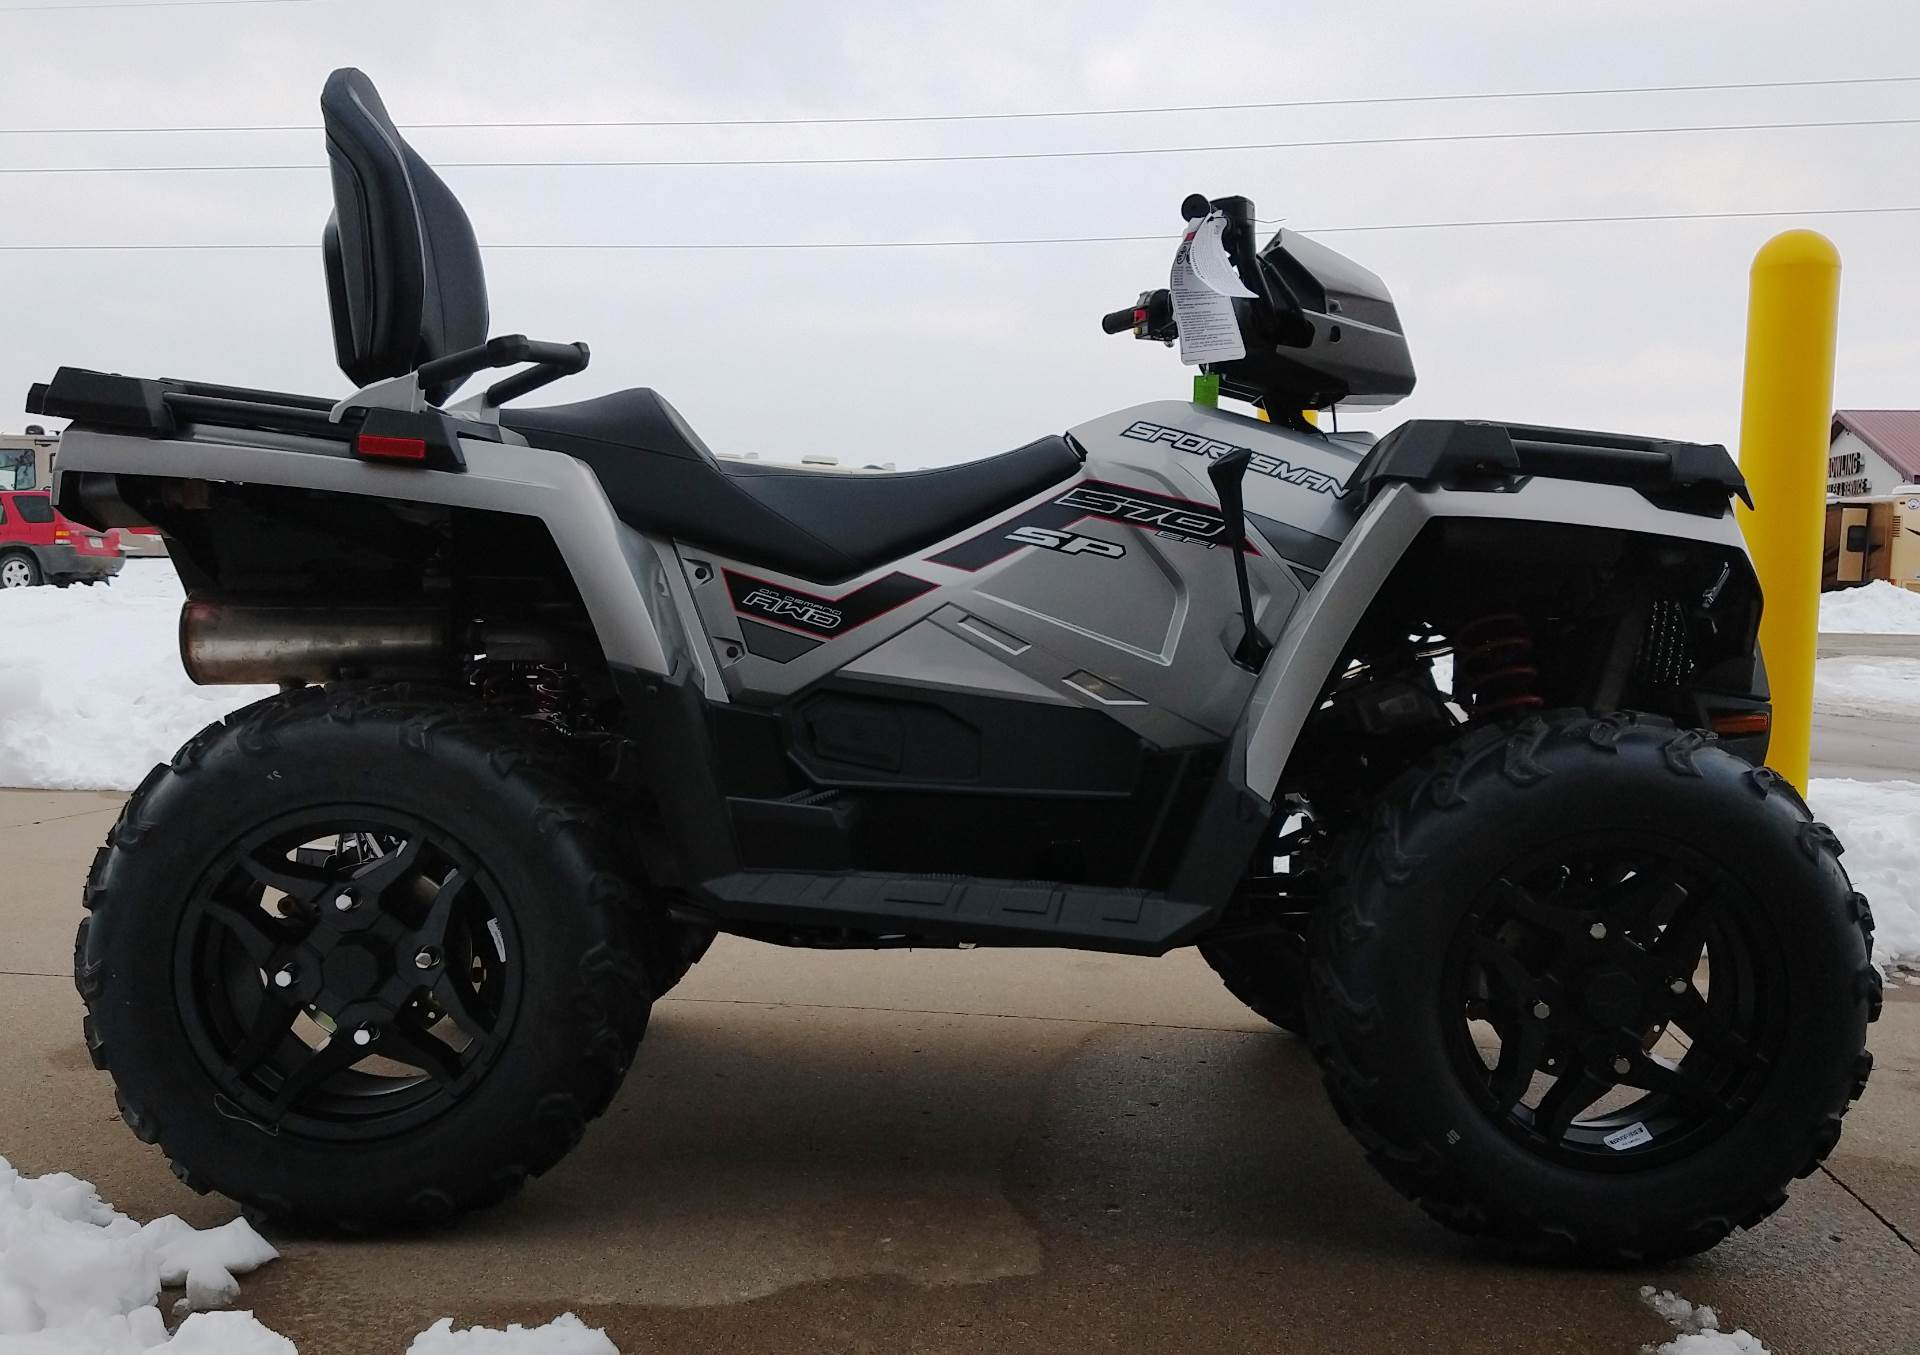 2019 Polaris Sportsman Touring 570 SP in Ottumwa, Iowa - Photo 4